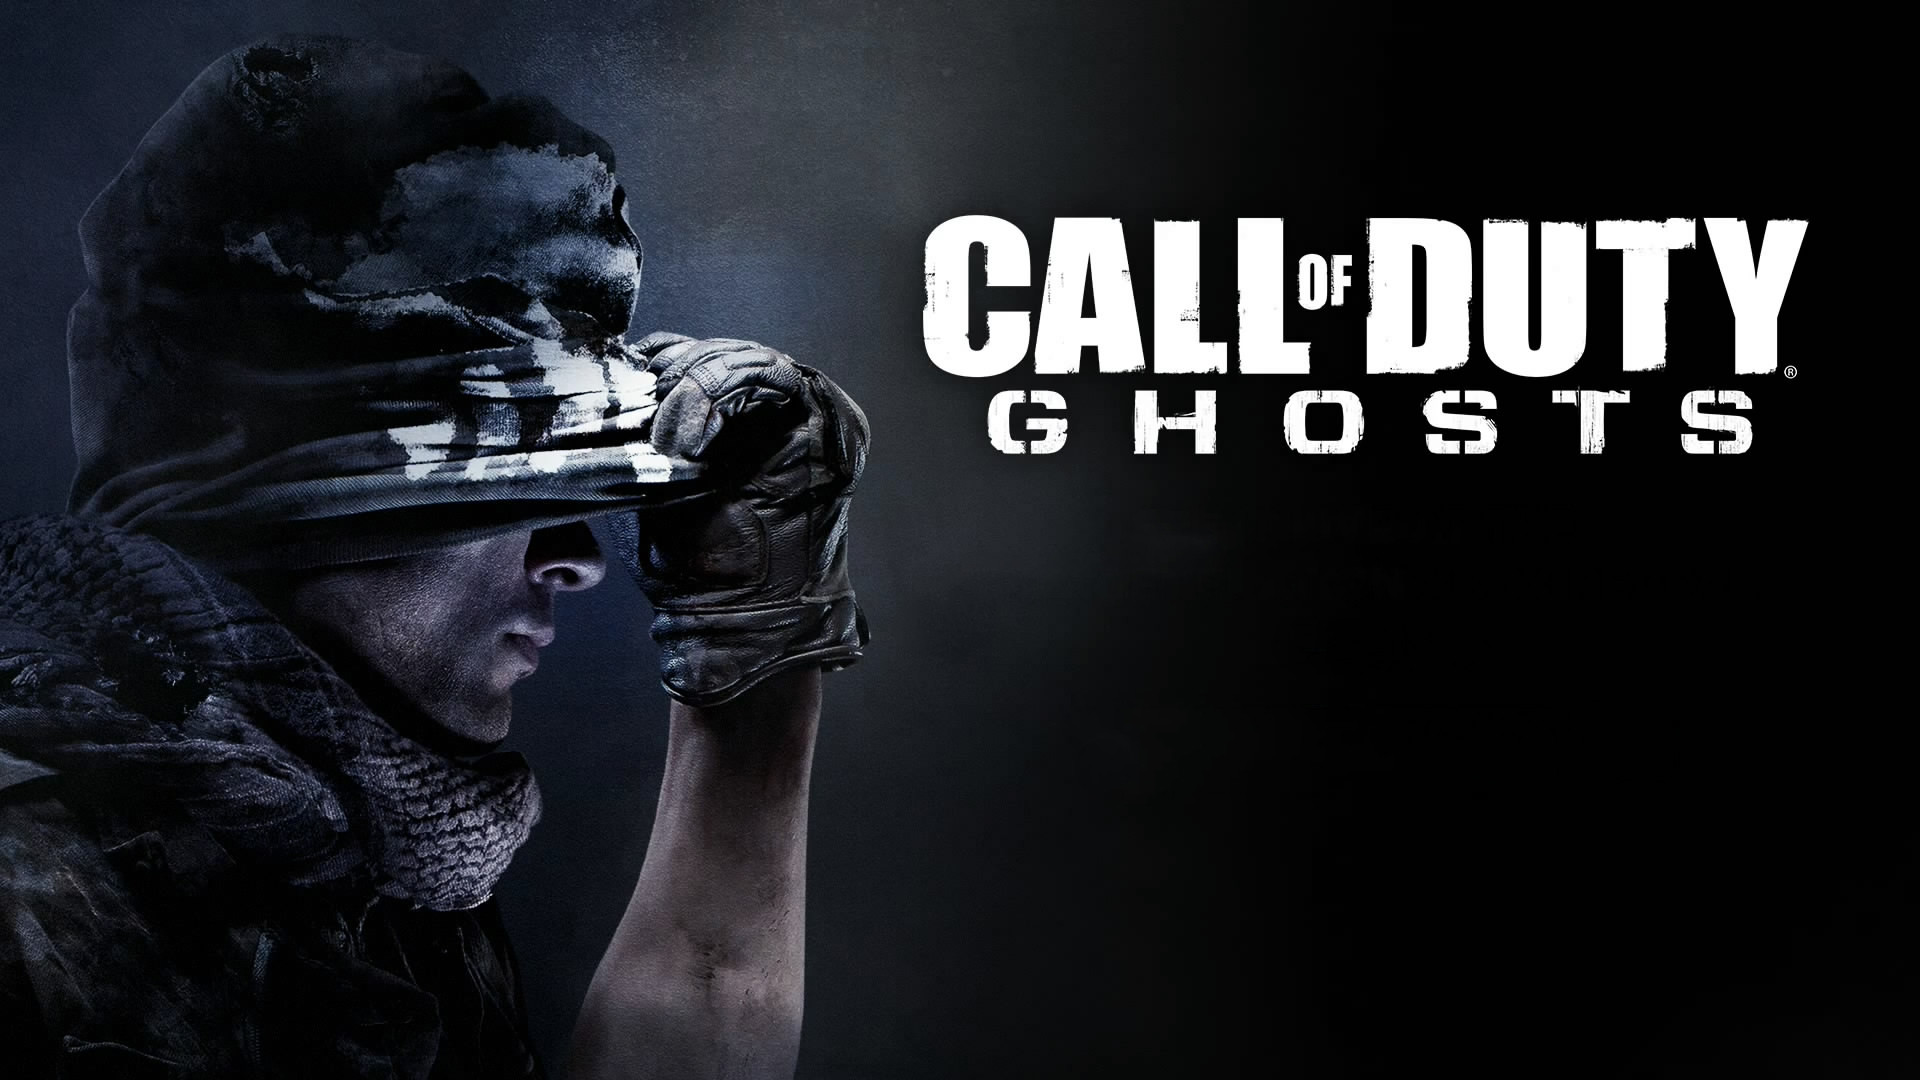 Call of Duty: Ghosts Sold Less Than Black Ops II at Launch, Activision Admits